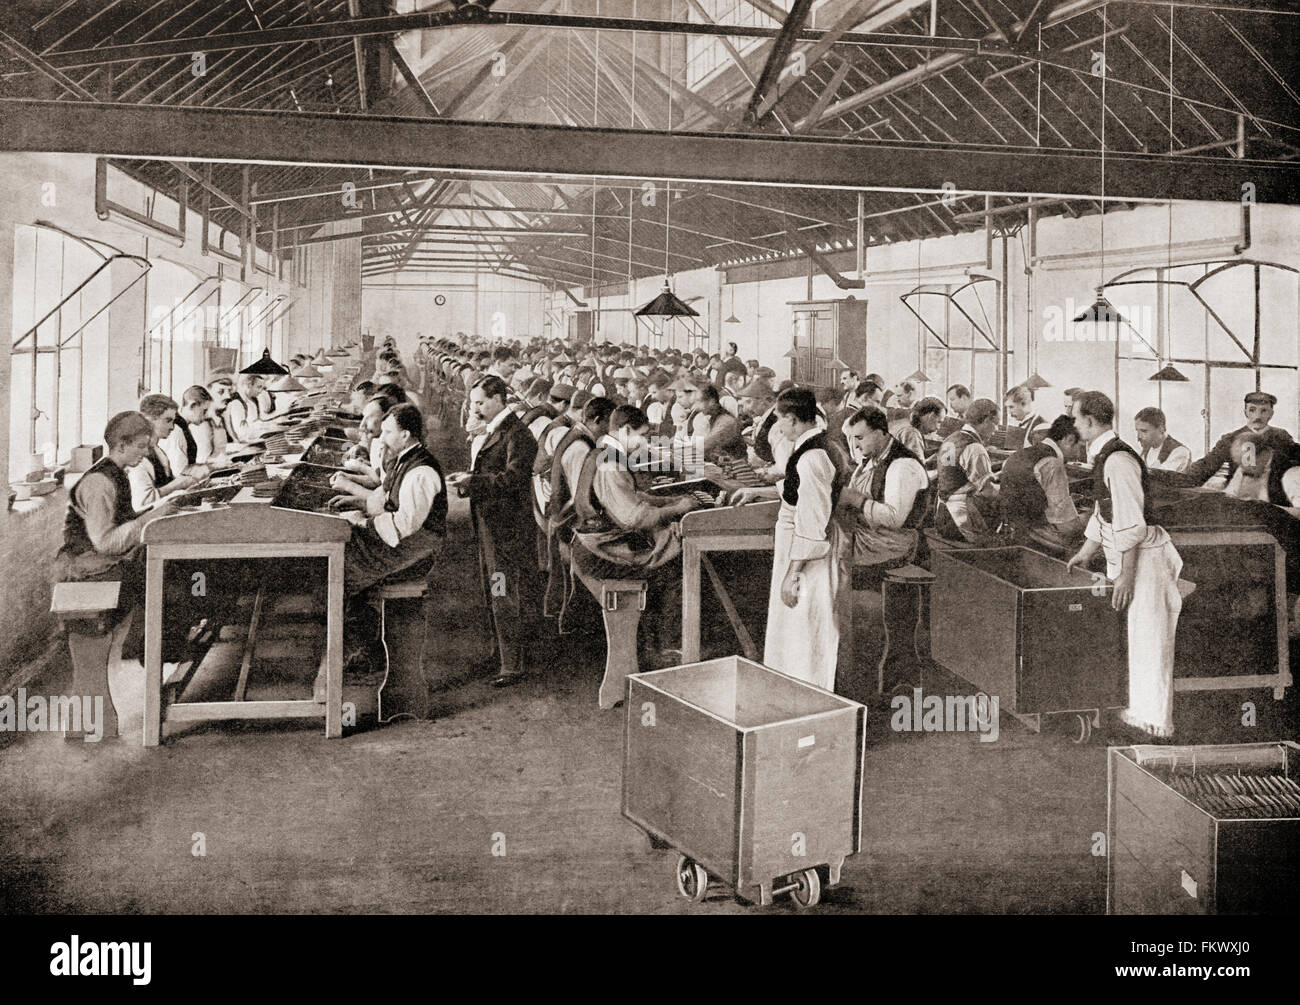 One of the cigar manufacturing departments at Salmon and Gluckstein Ltd, London, England, in the late 19th century. - Stock Image